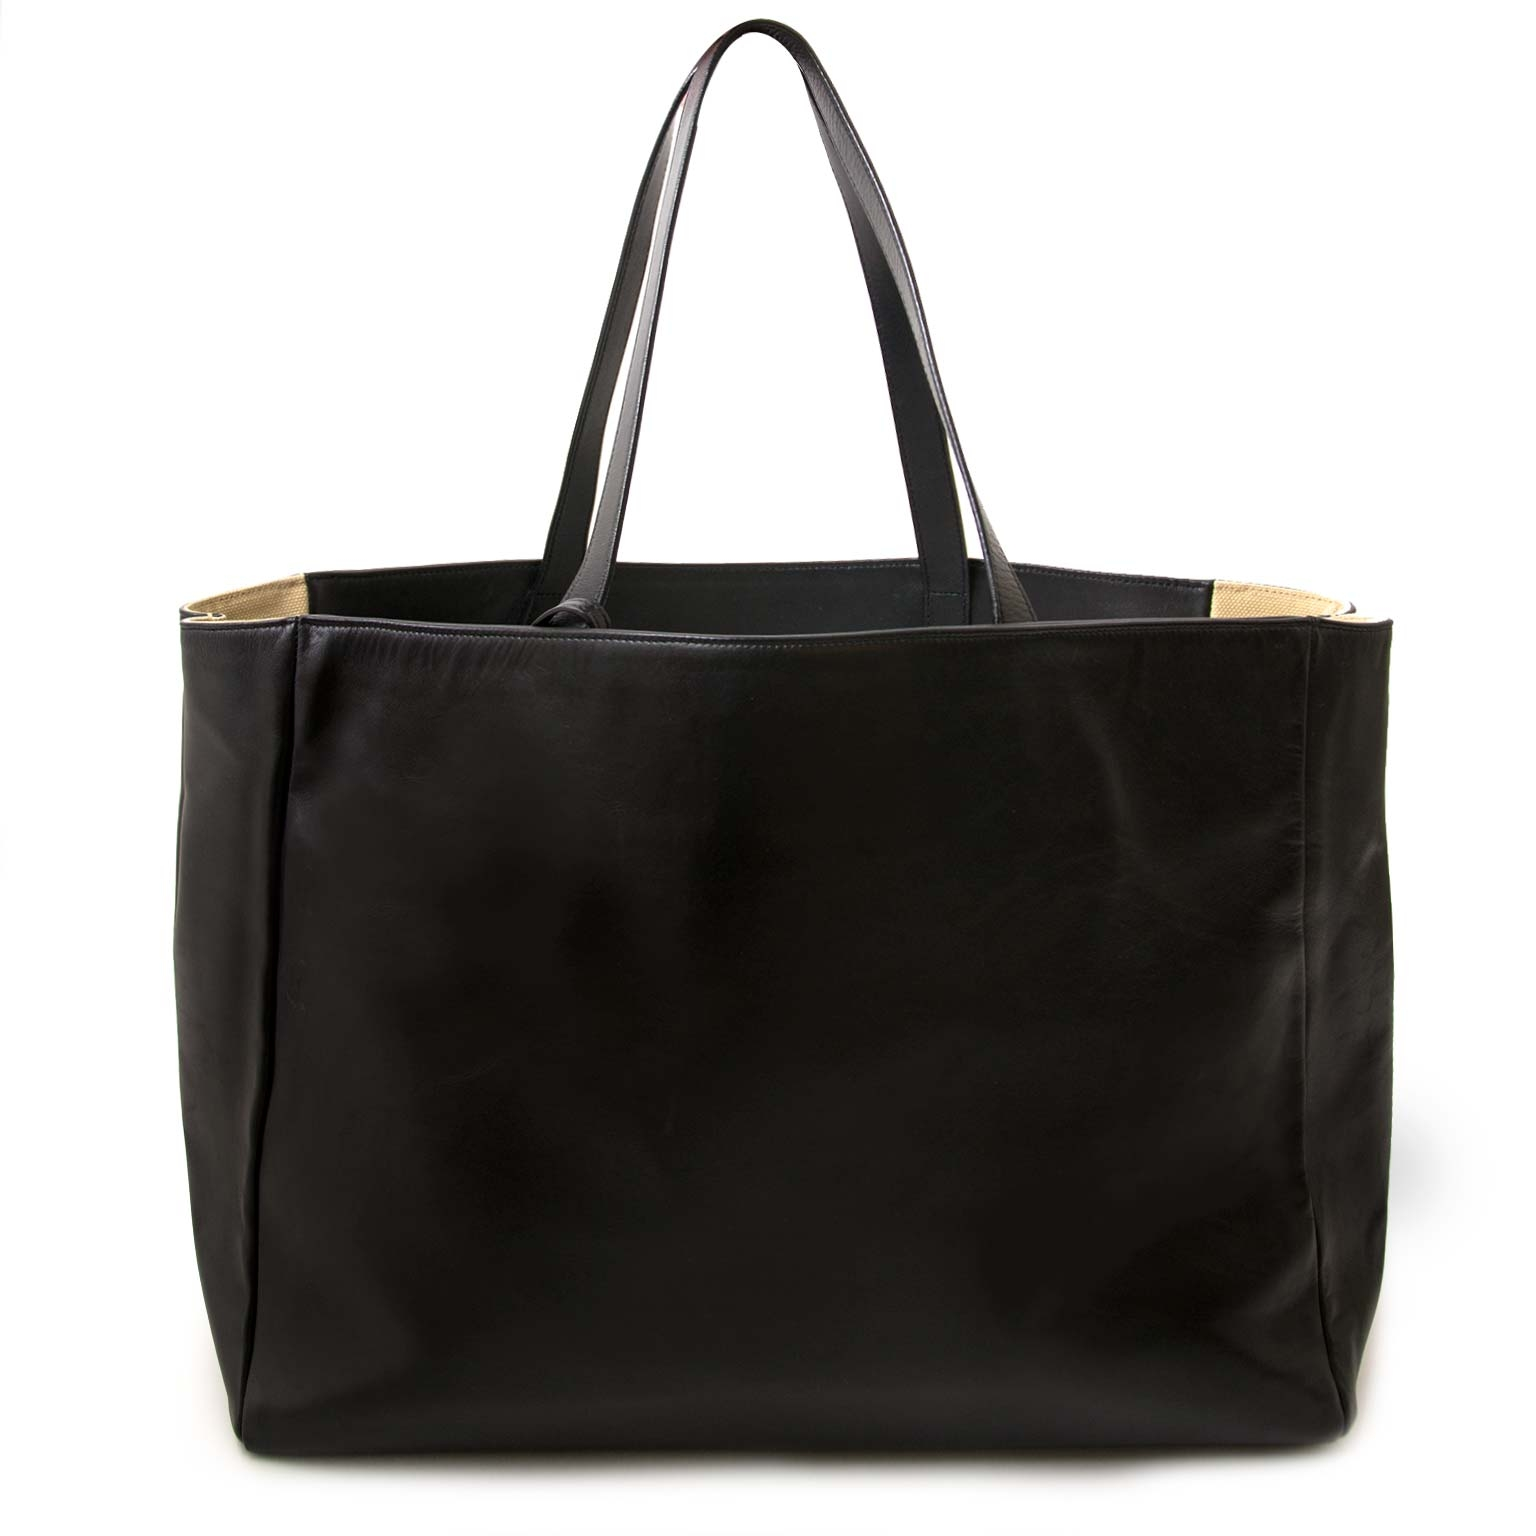 buy Saint Laurent Black East West Shopper at labellov for the best price